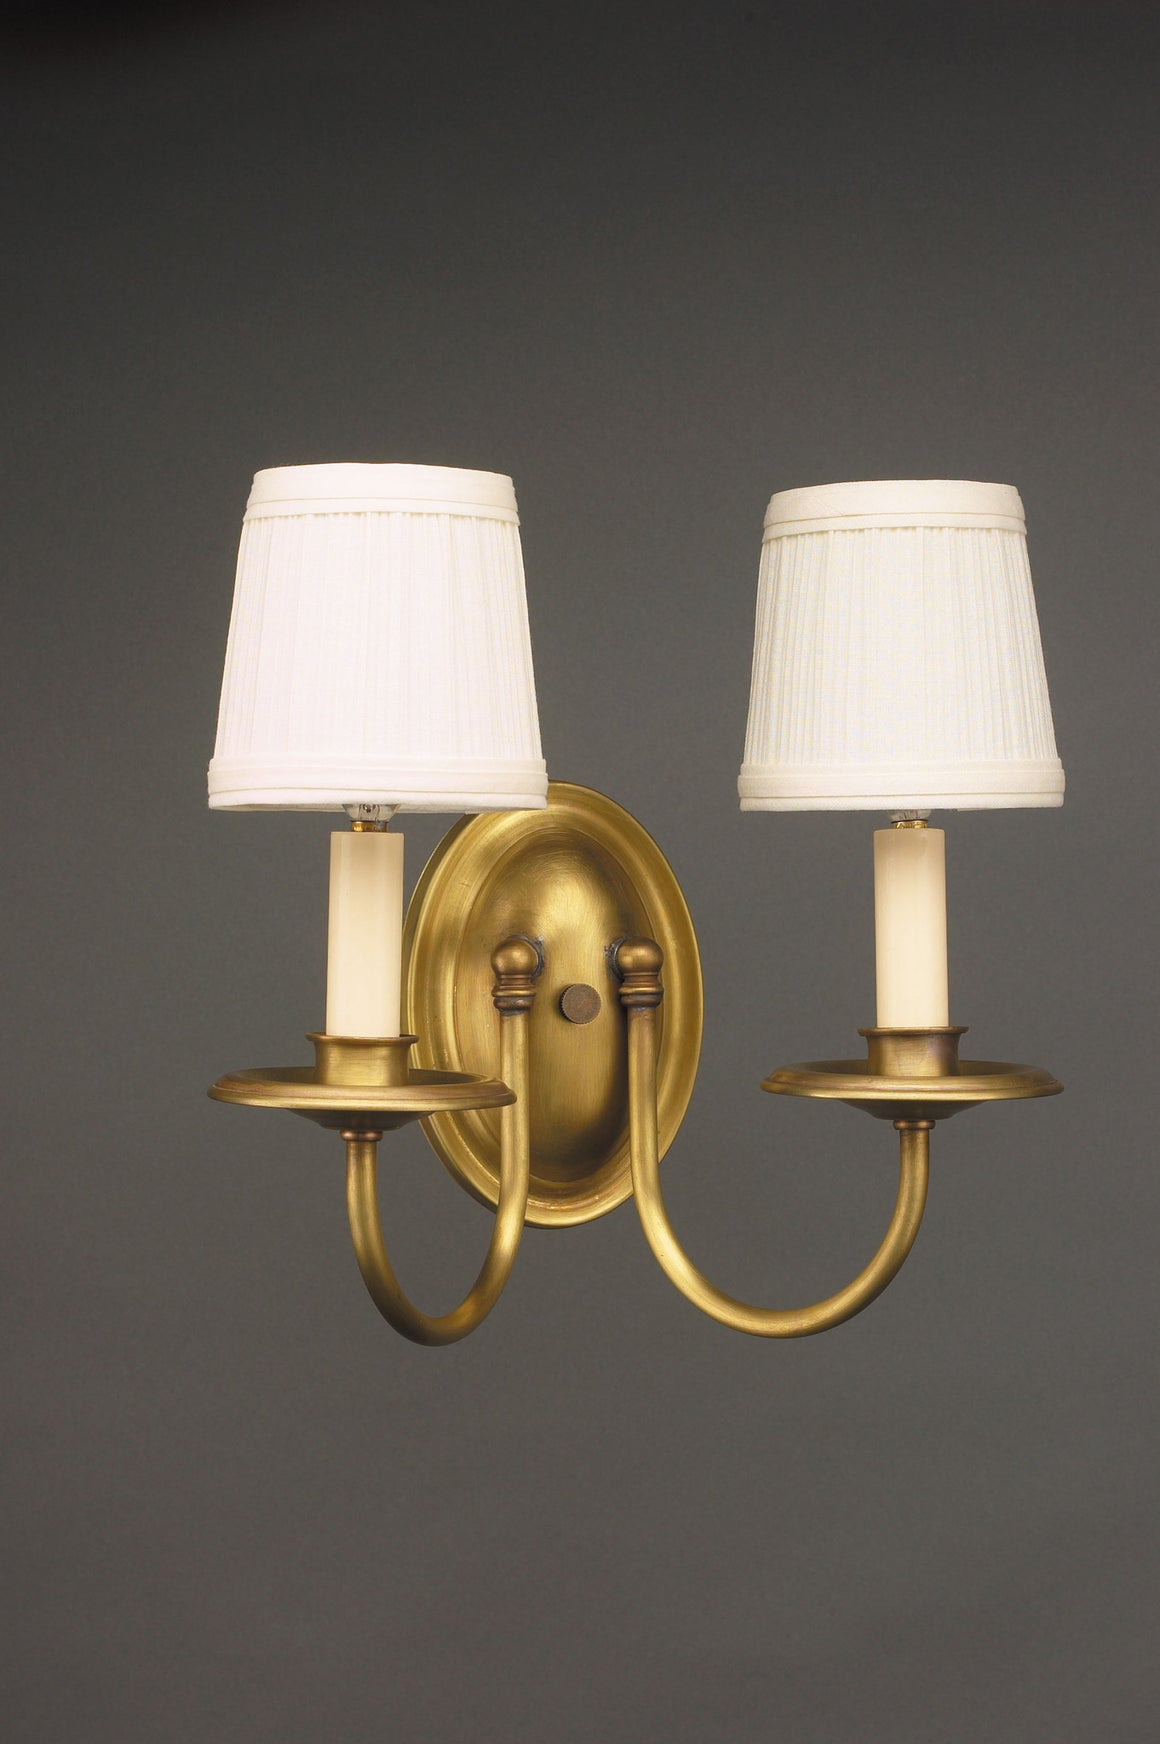 Sconce 117-8